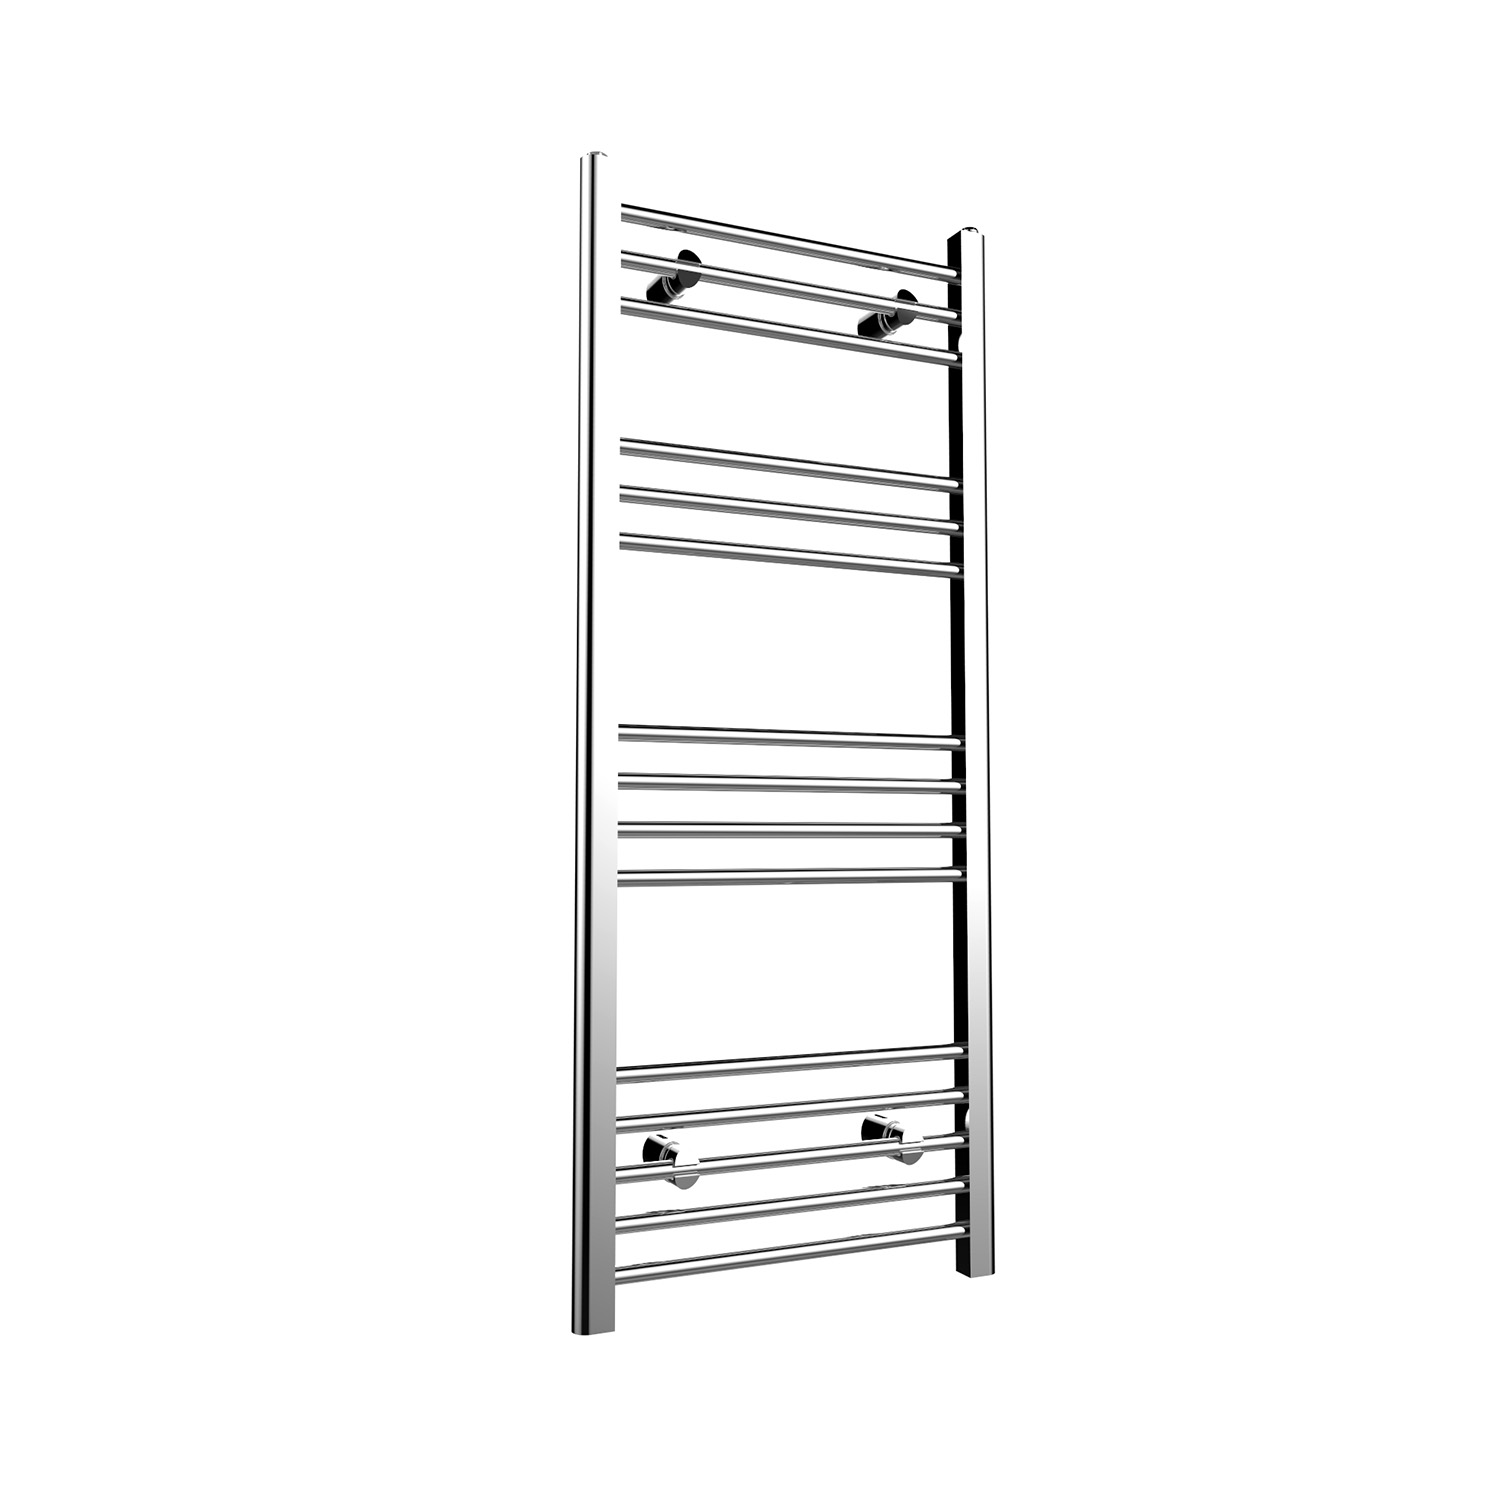 SALLY R2-12 Stainless Steel Towel Radiator